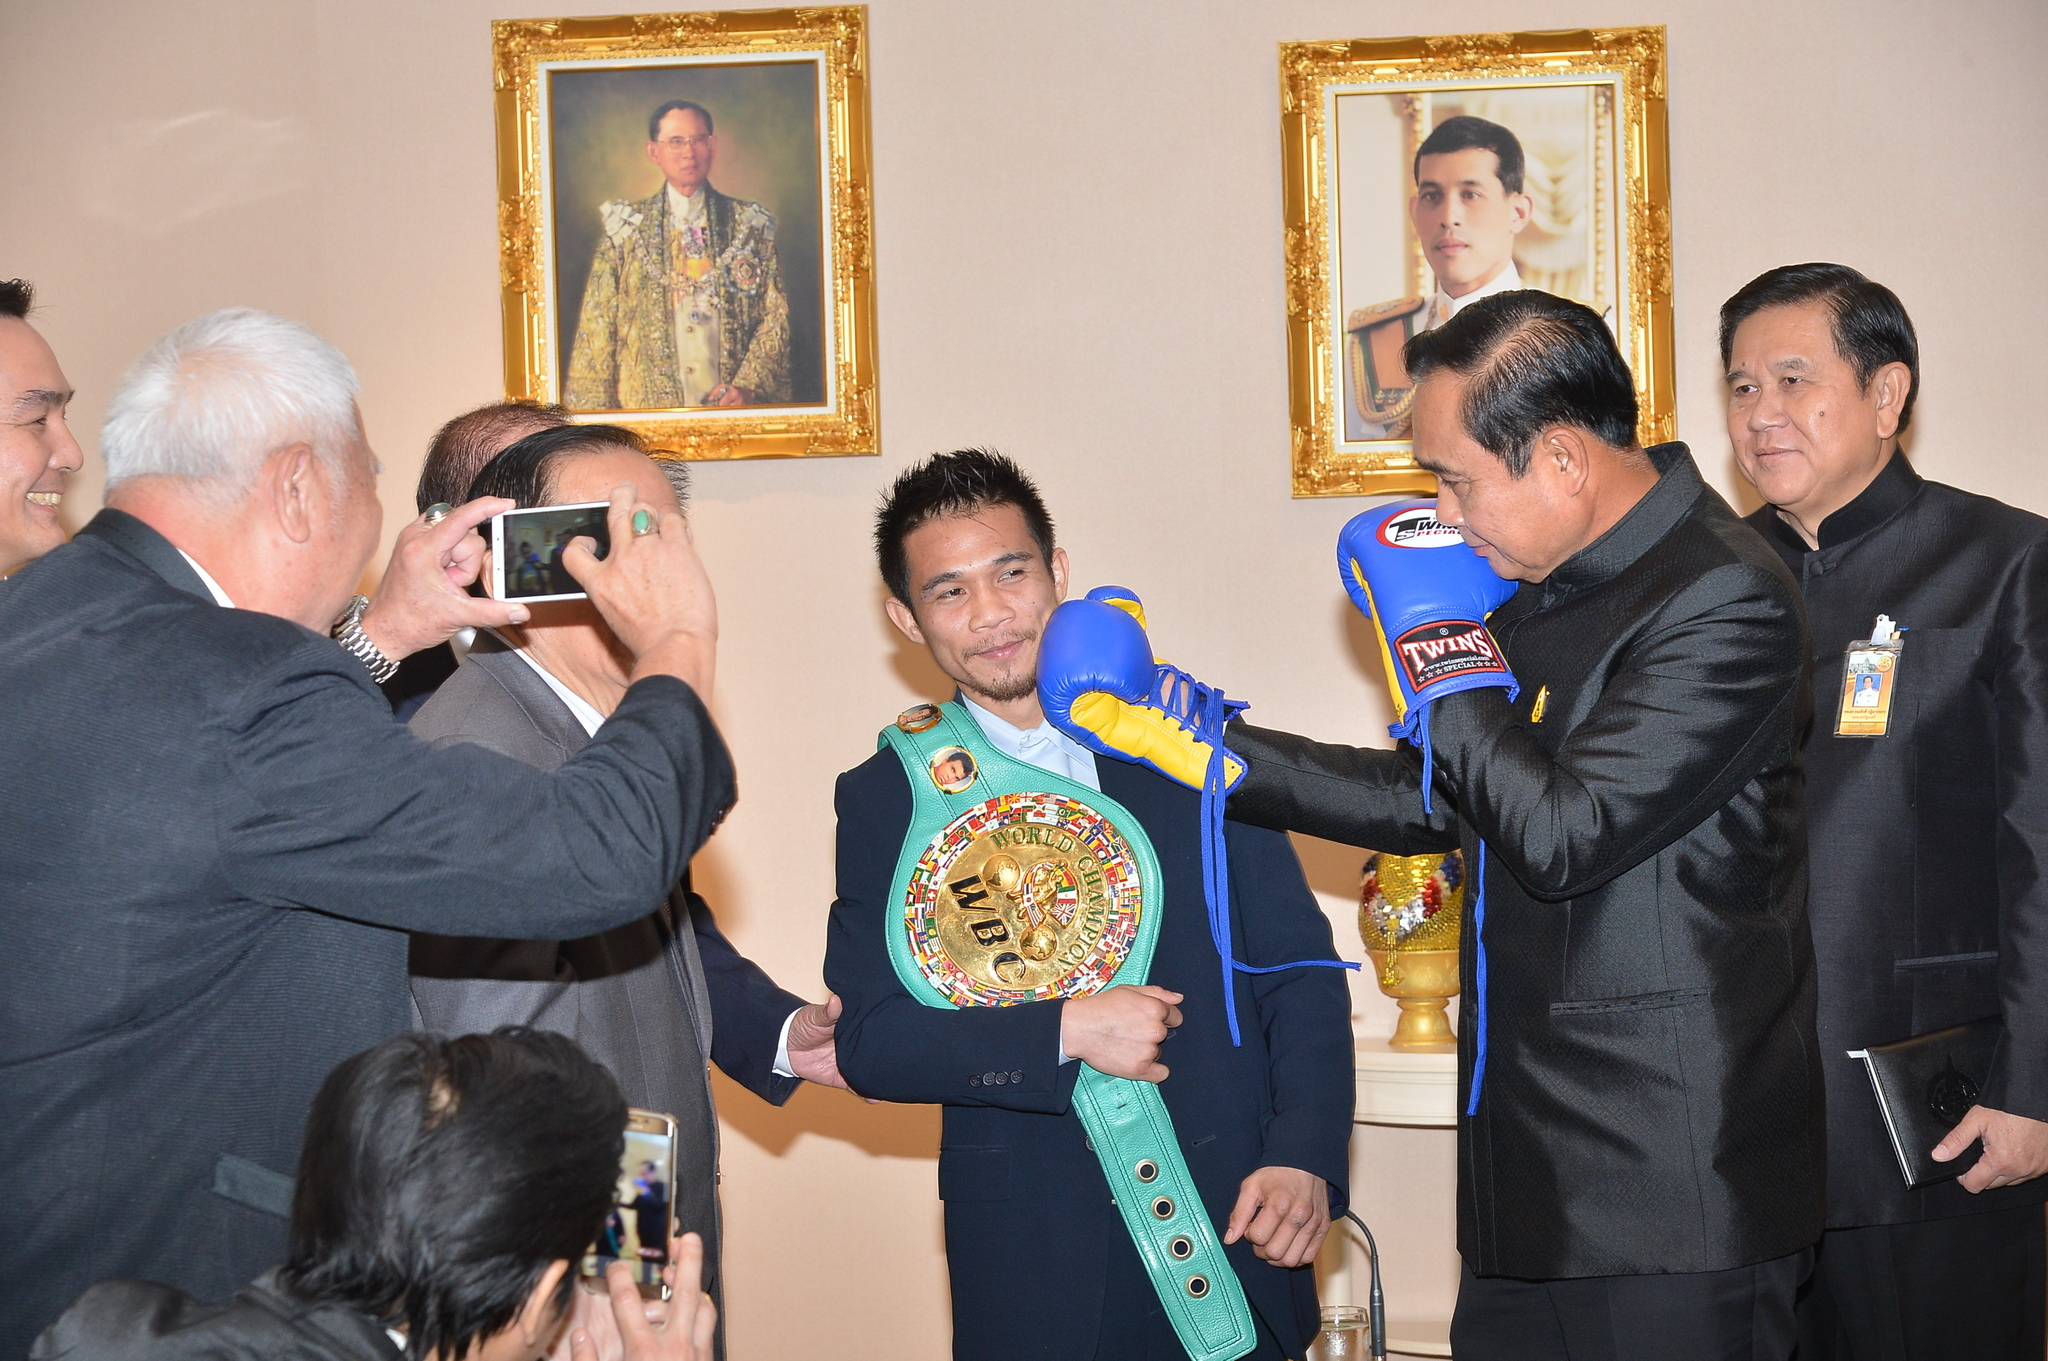 "<a href=""website_en/news/news_detail/WNPOL6003280010011"" target=""_blank"" class=""fontbold font14"" style=""line-height: 1.5em;"">Sisaket Nakhonluang Promotion visits PM at Government House</a>